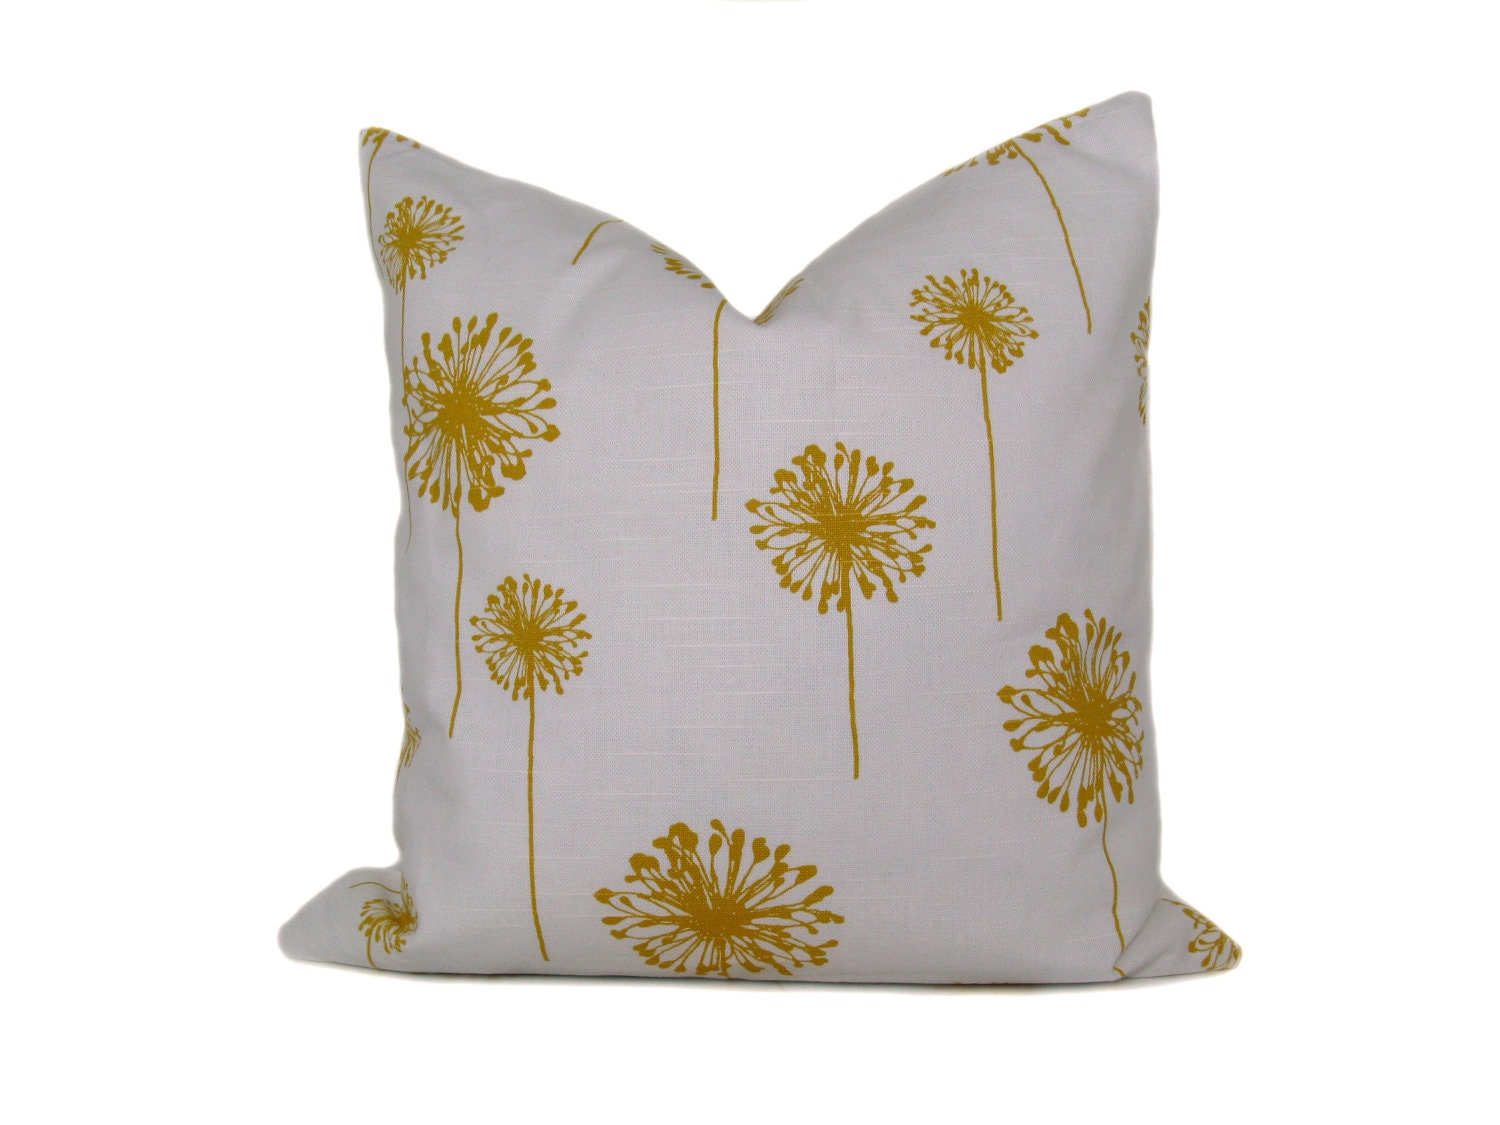 Decorative Pillows Etsy : Yellow Pillows. Throw Pillow Covers 18x18 Yellow by EastAndNest